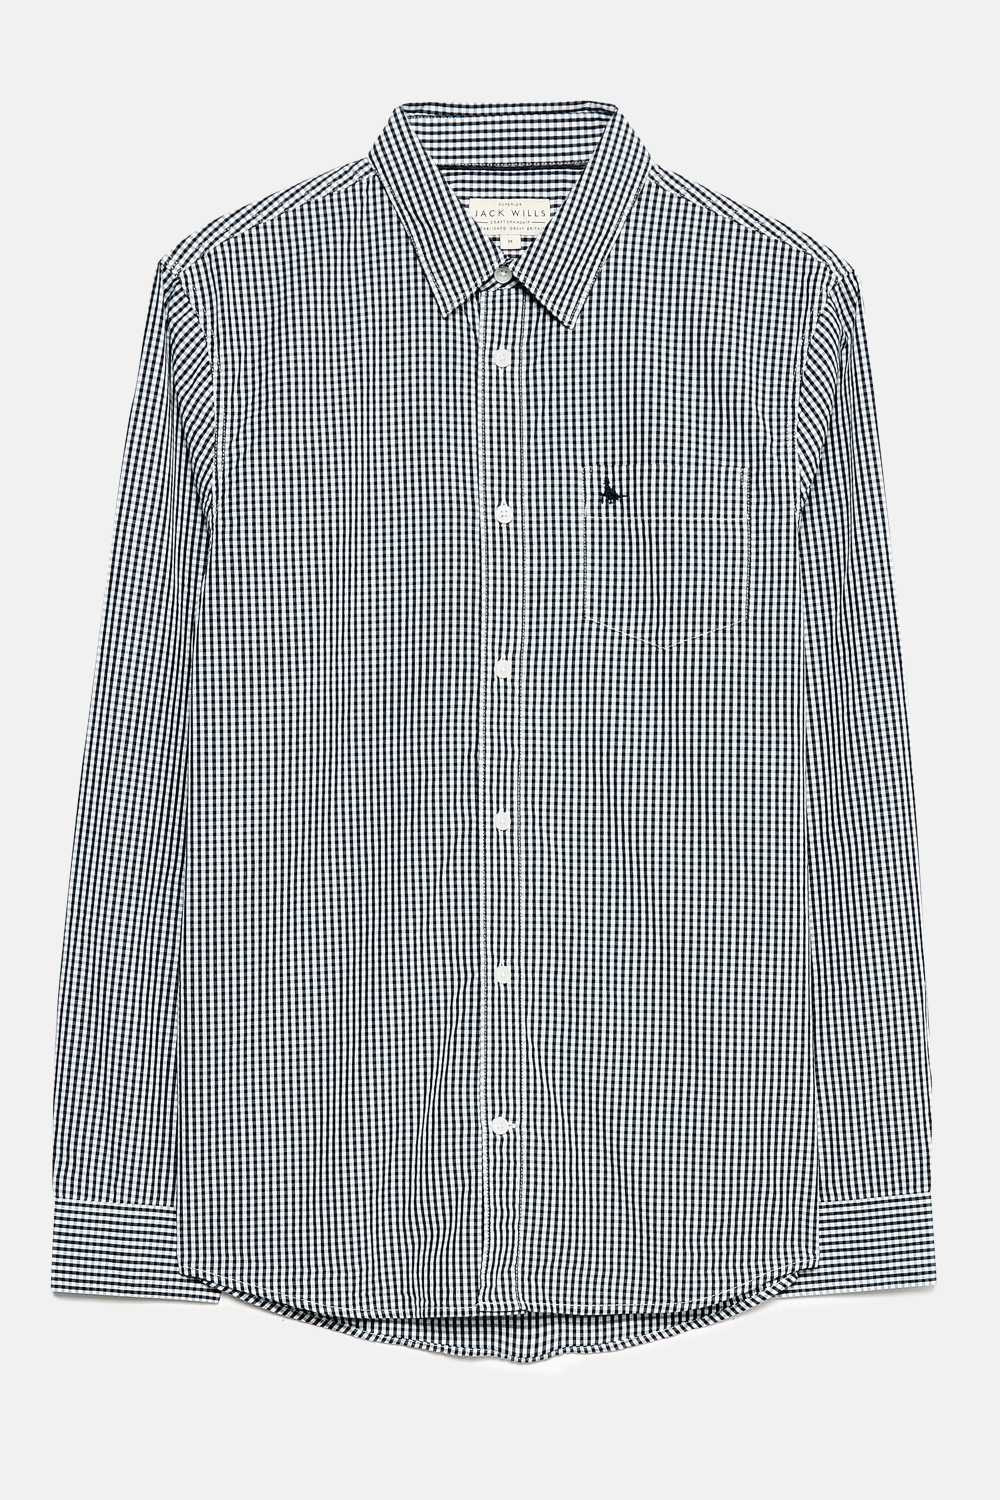 Jack Wills Navy IFFLEY GINGHAM POPLIN SHIRT